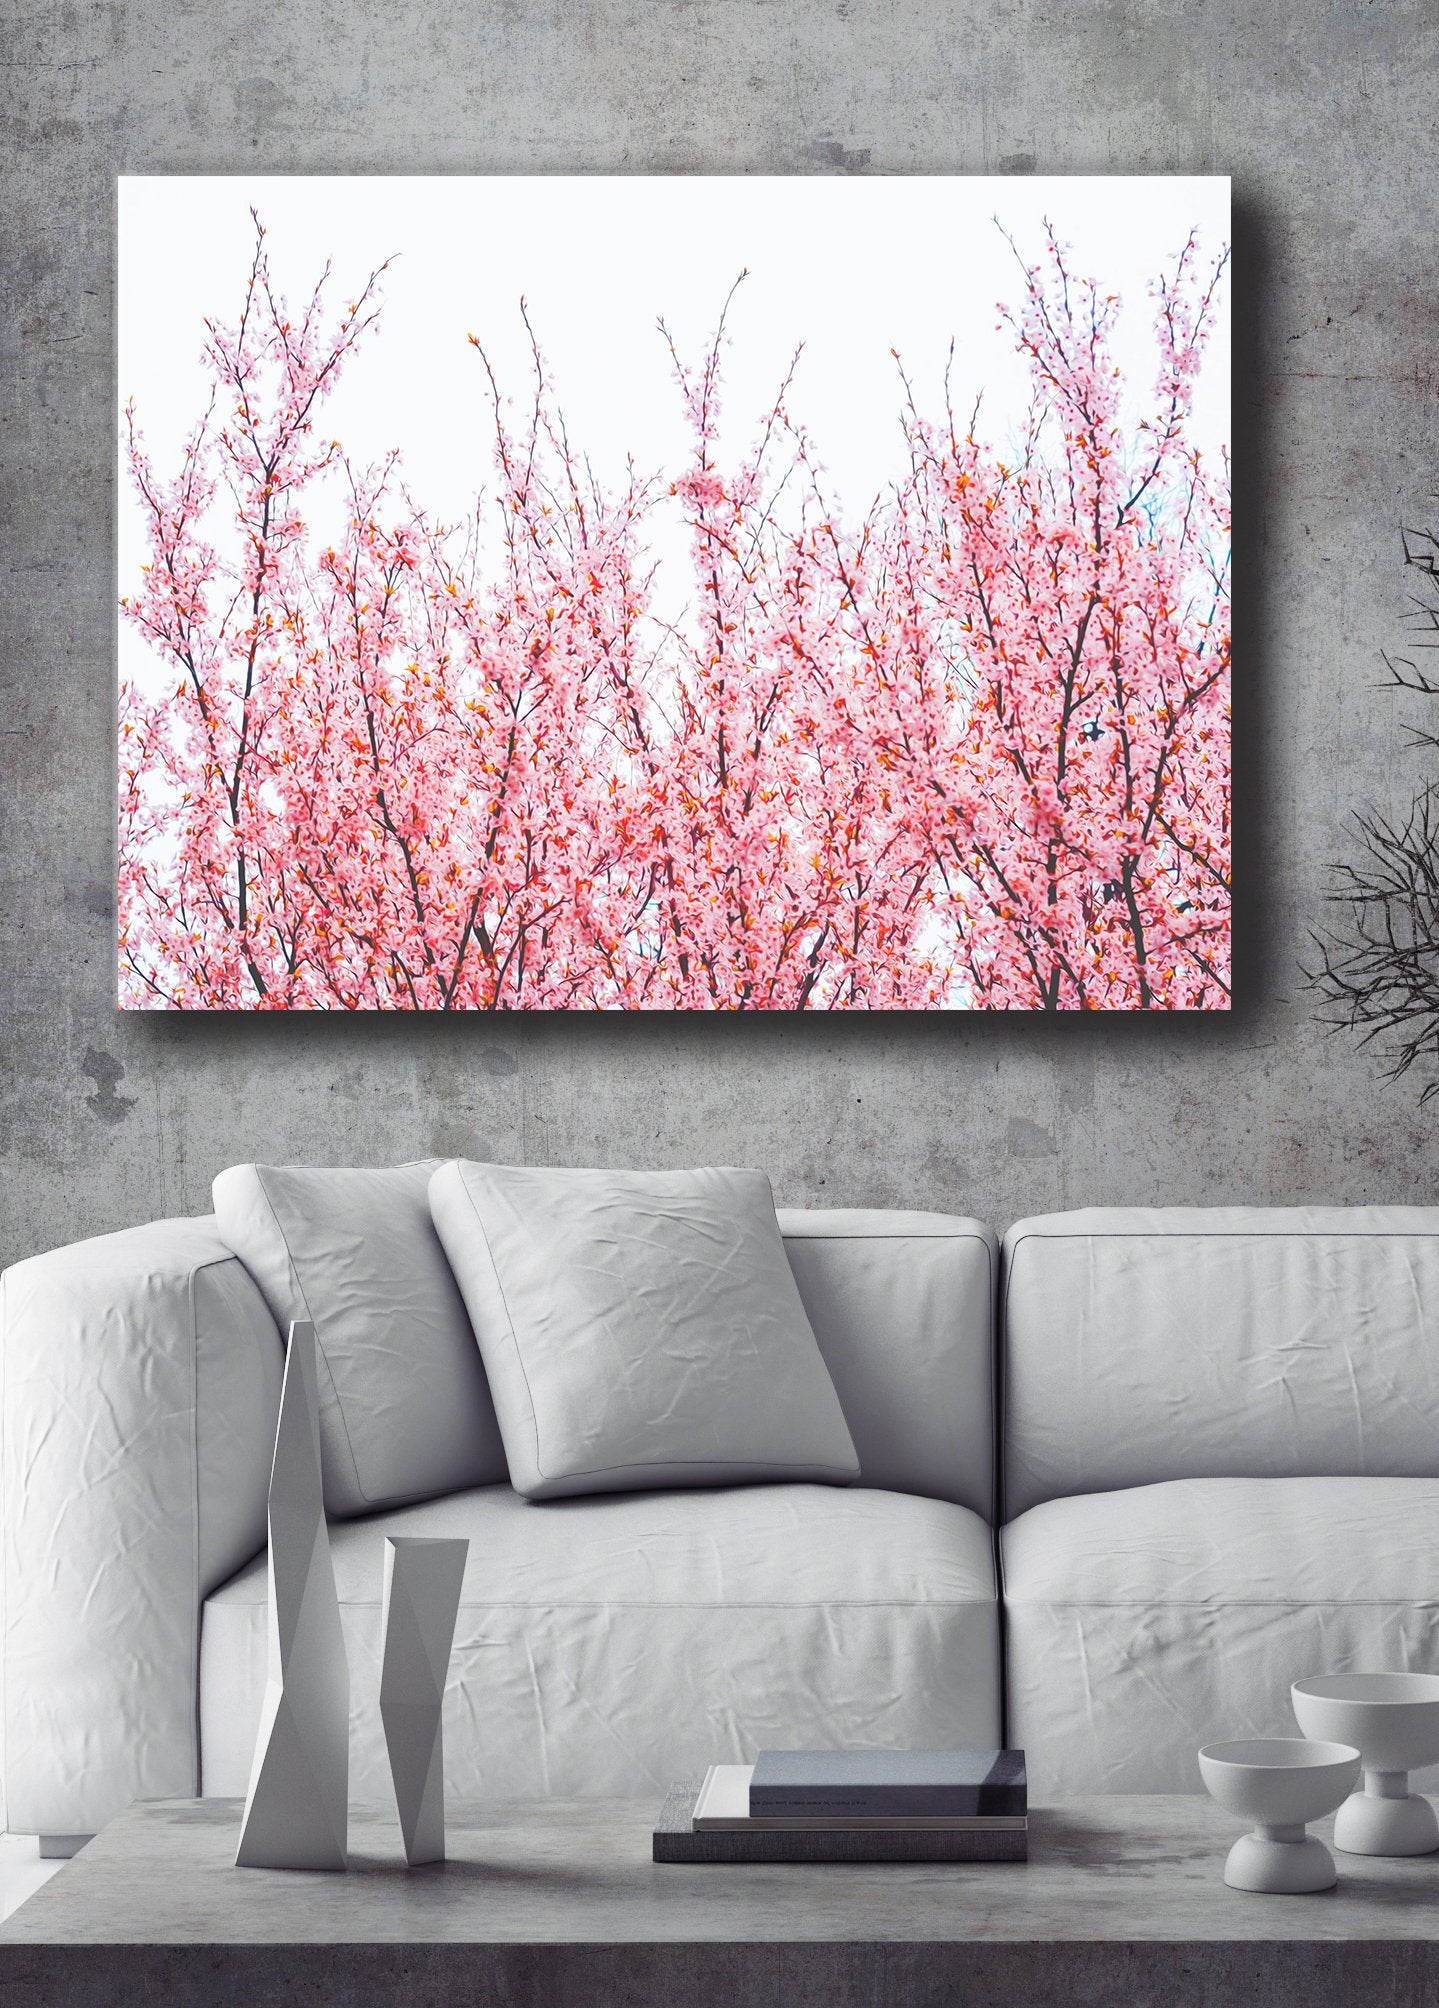 Nature Wall Art: Pink Blossom Branches (Wood Frame Ready To Hang)